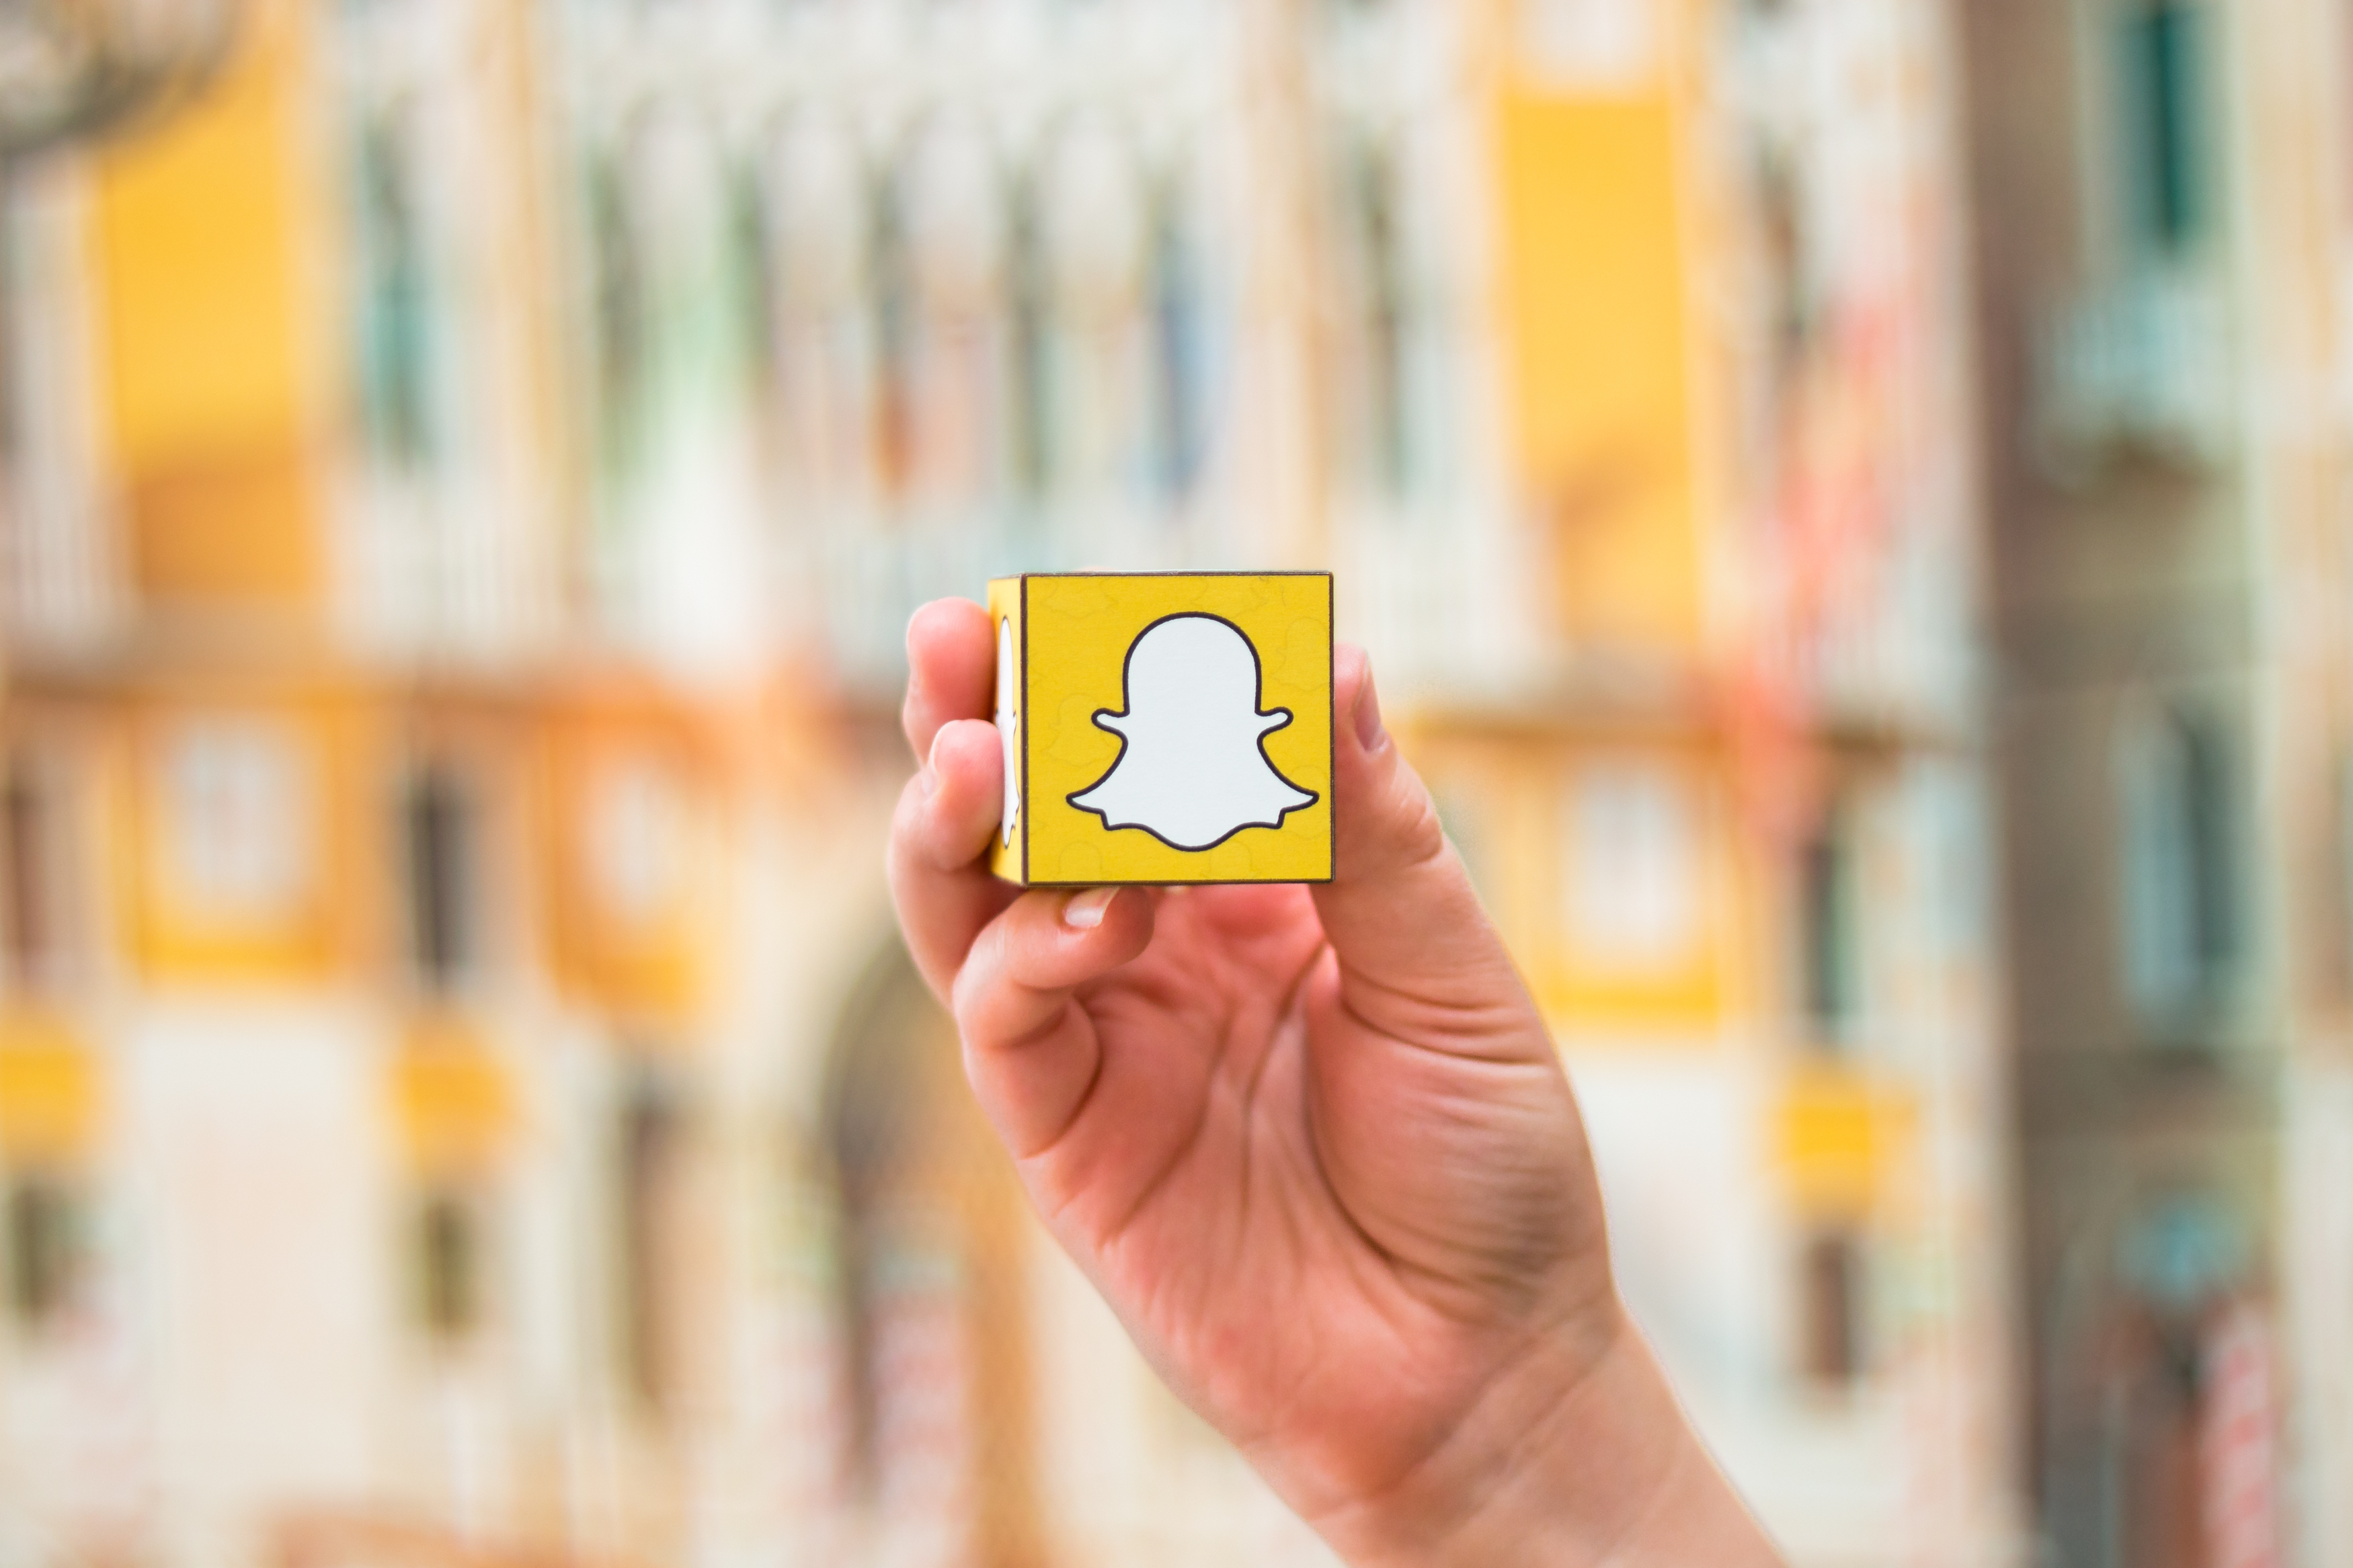 Hand holdling cube with Snapchat logo in front of blurred background.